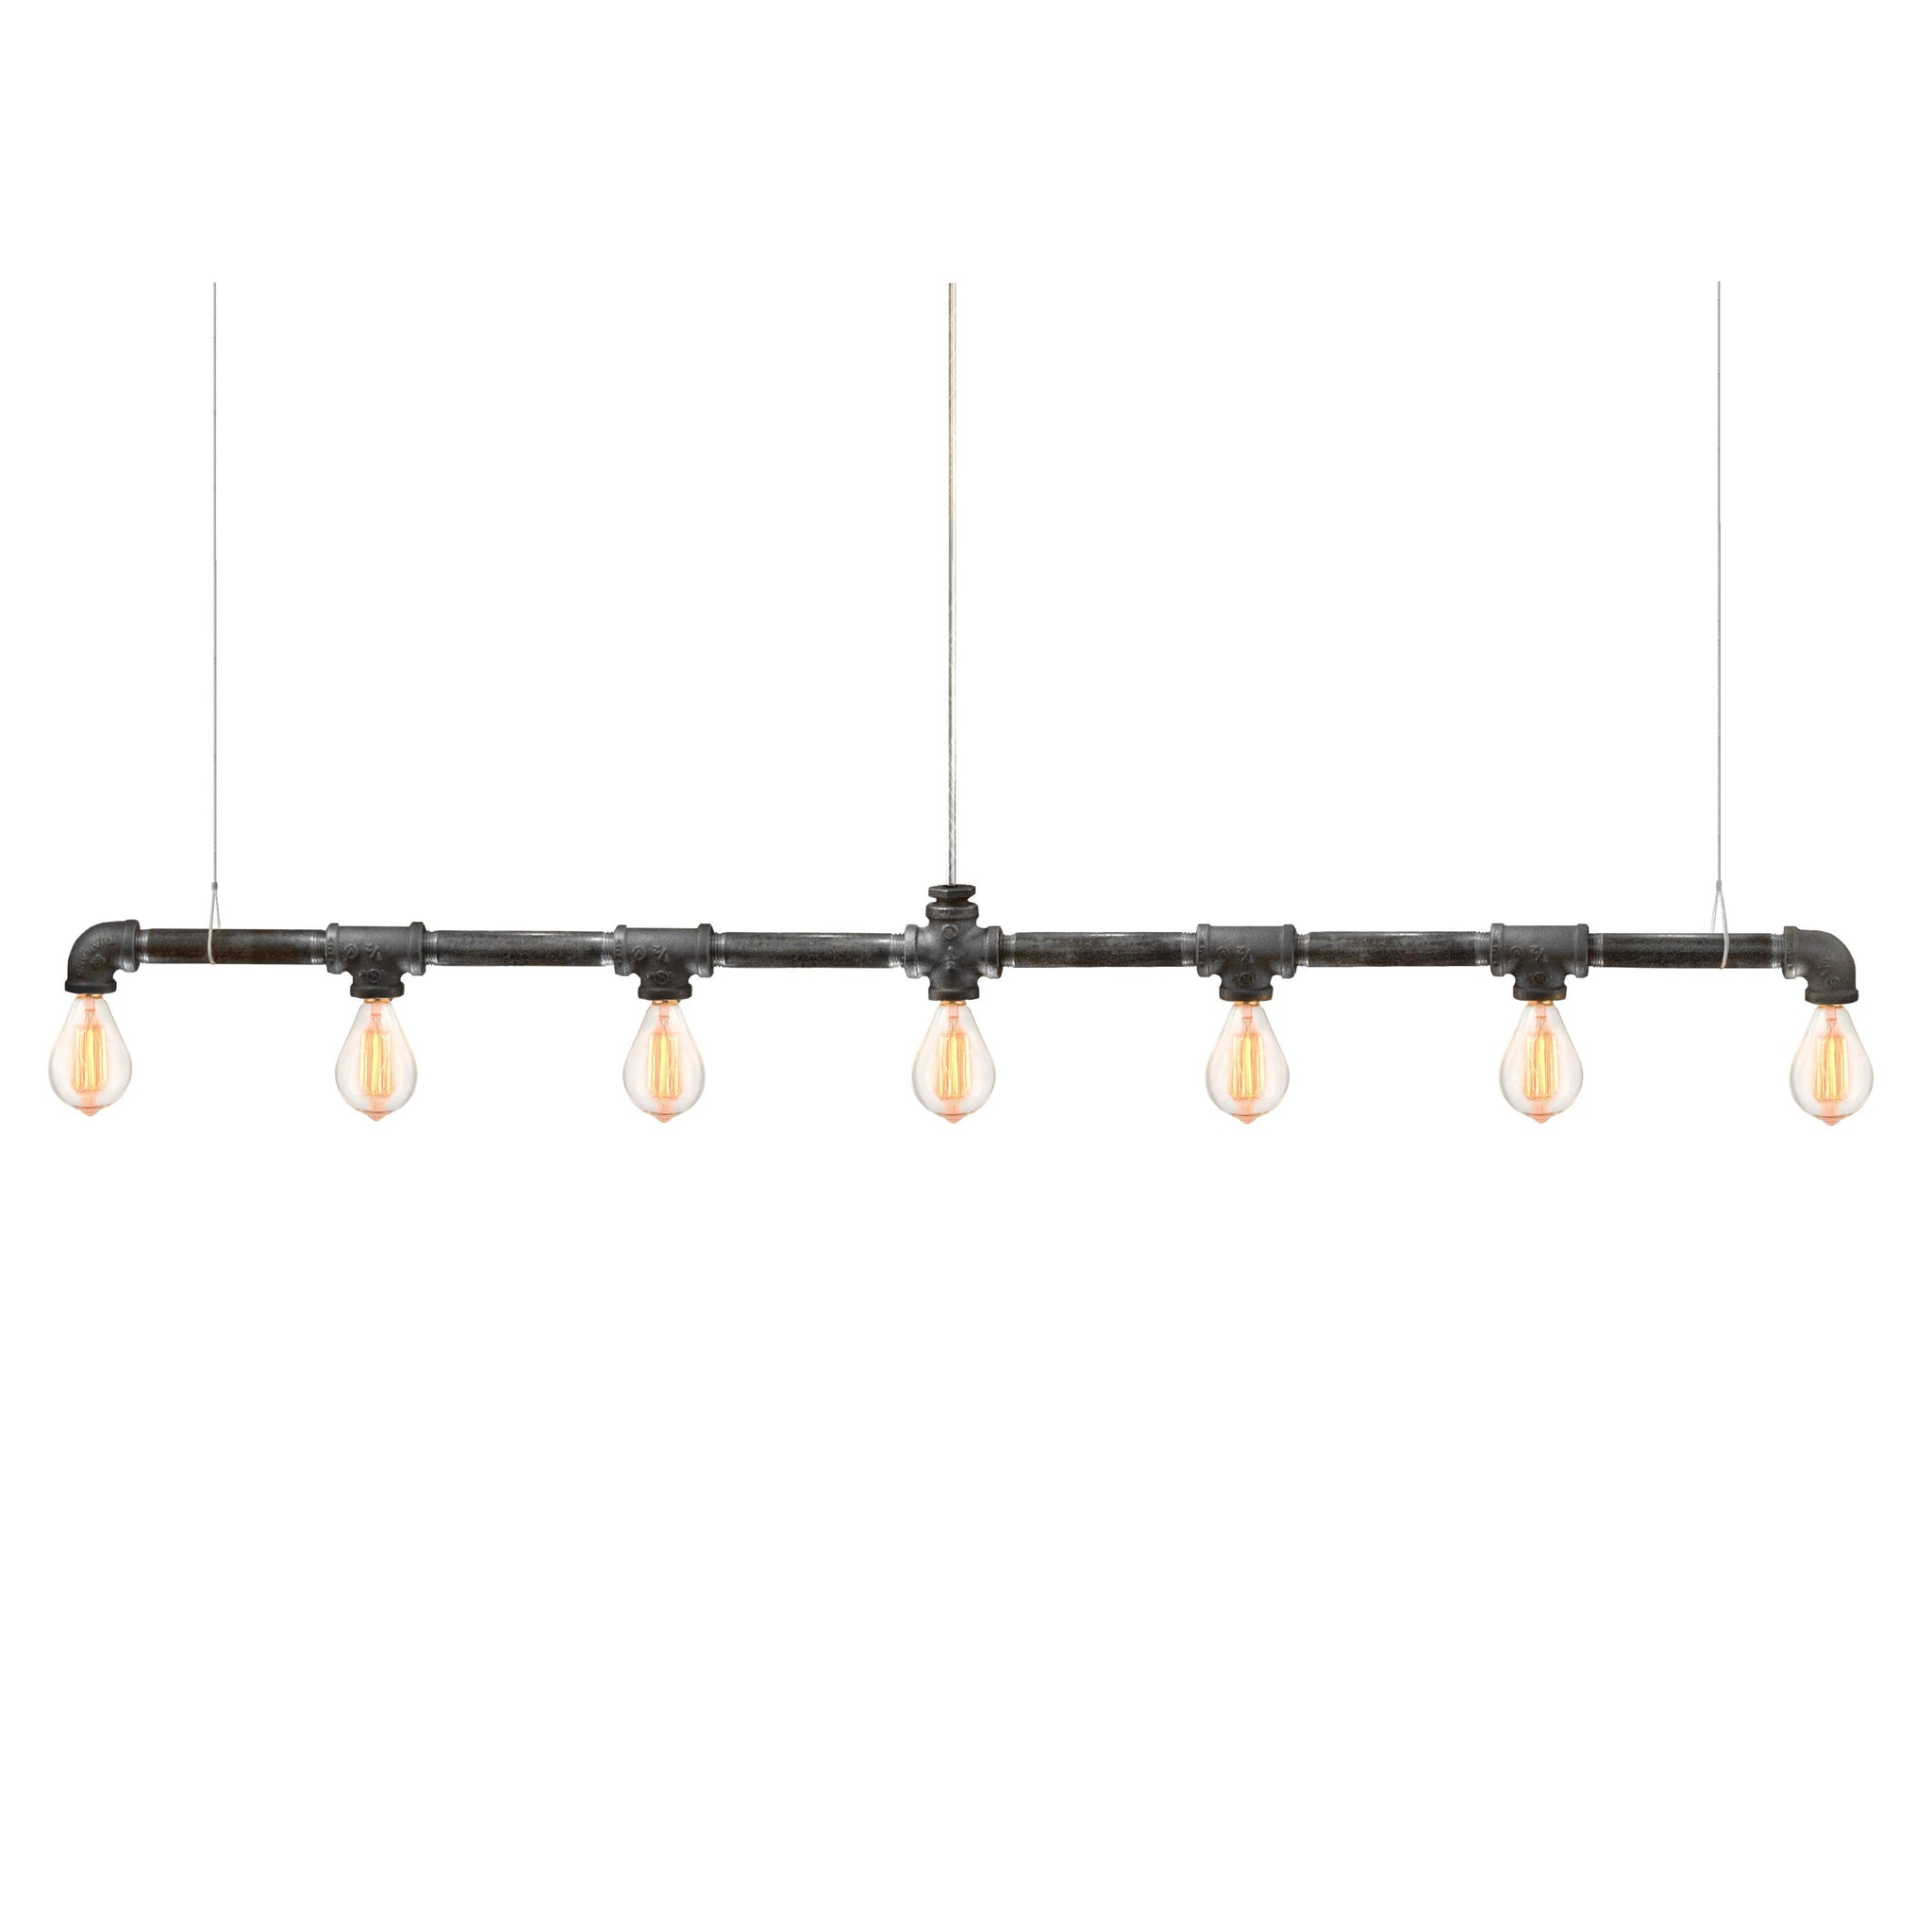 Raw Collection 7-Bulb Bar Linear Suspension